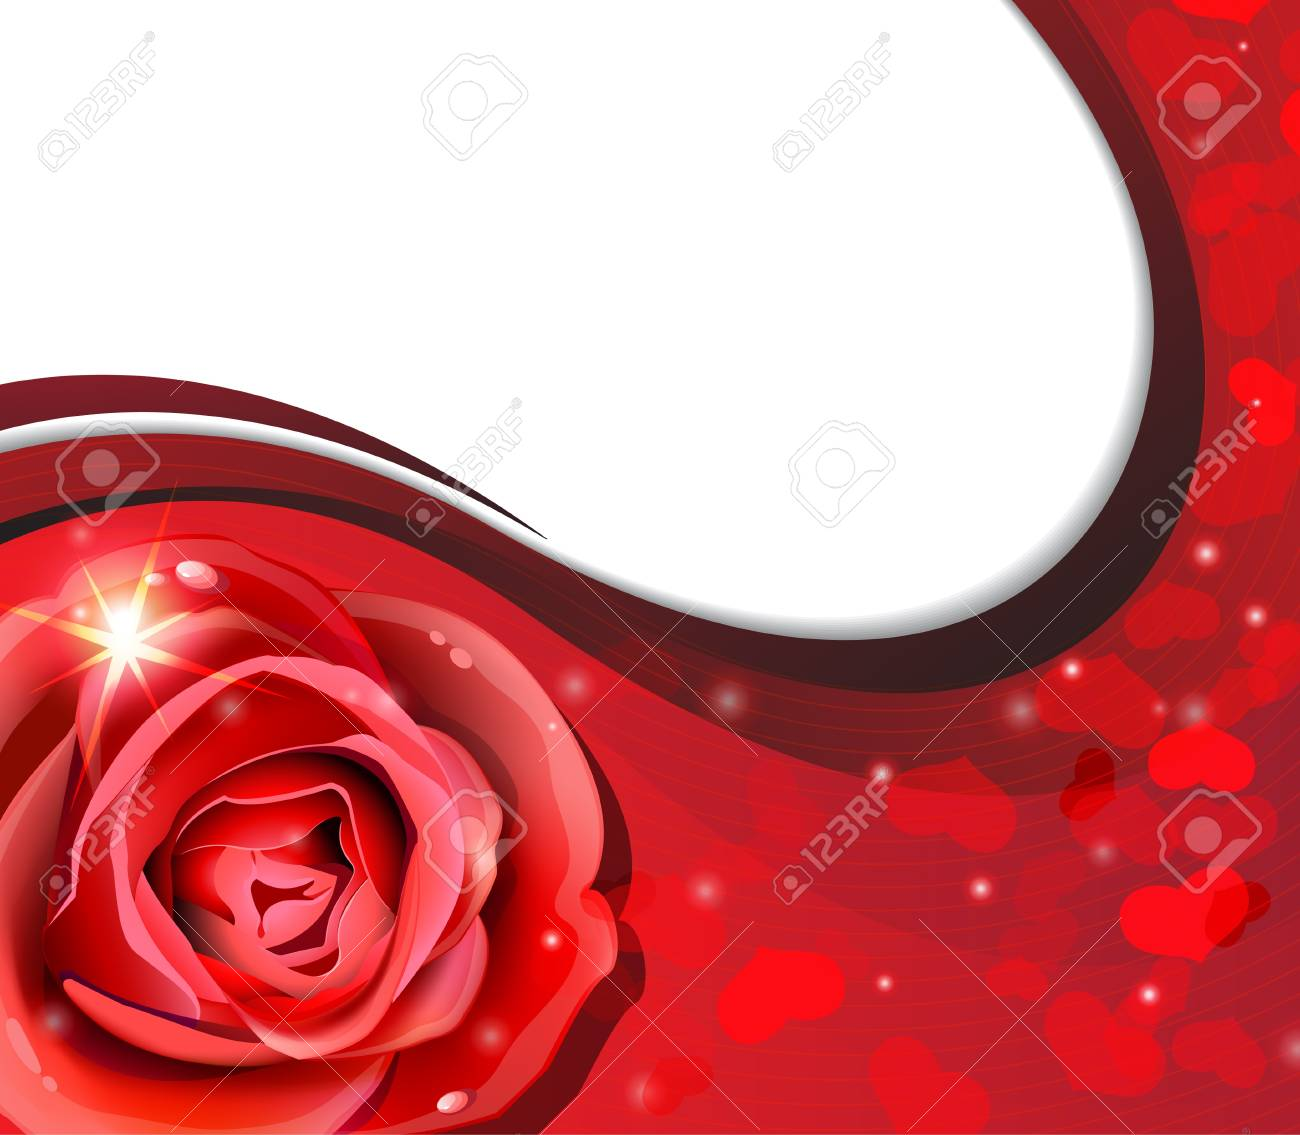 Red rose on a wavy red background Stock Vector - 17778896